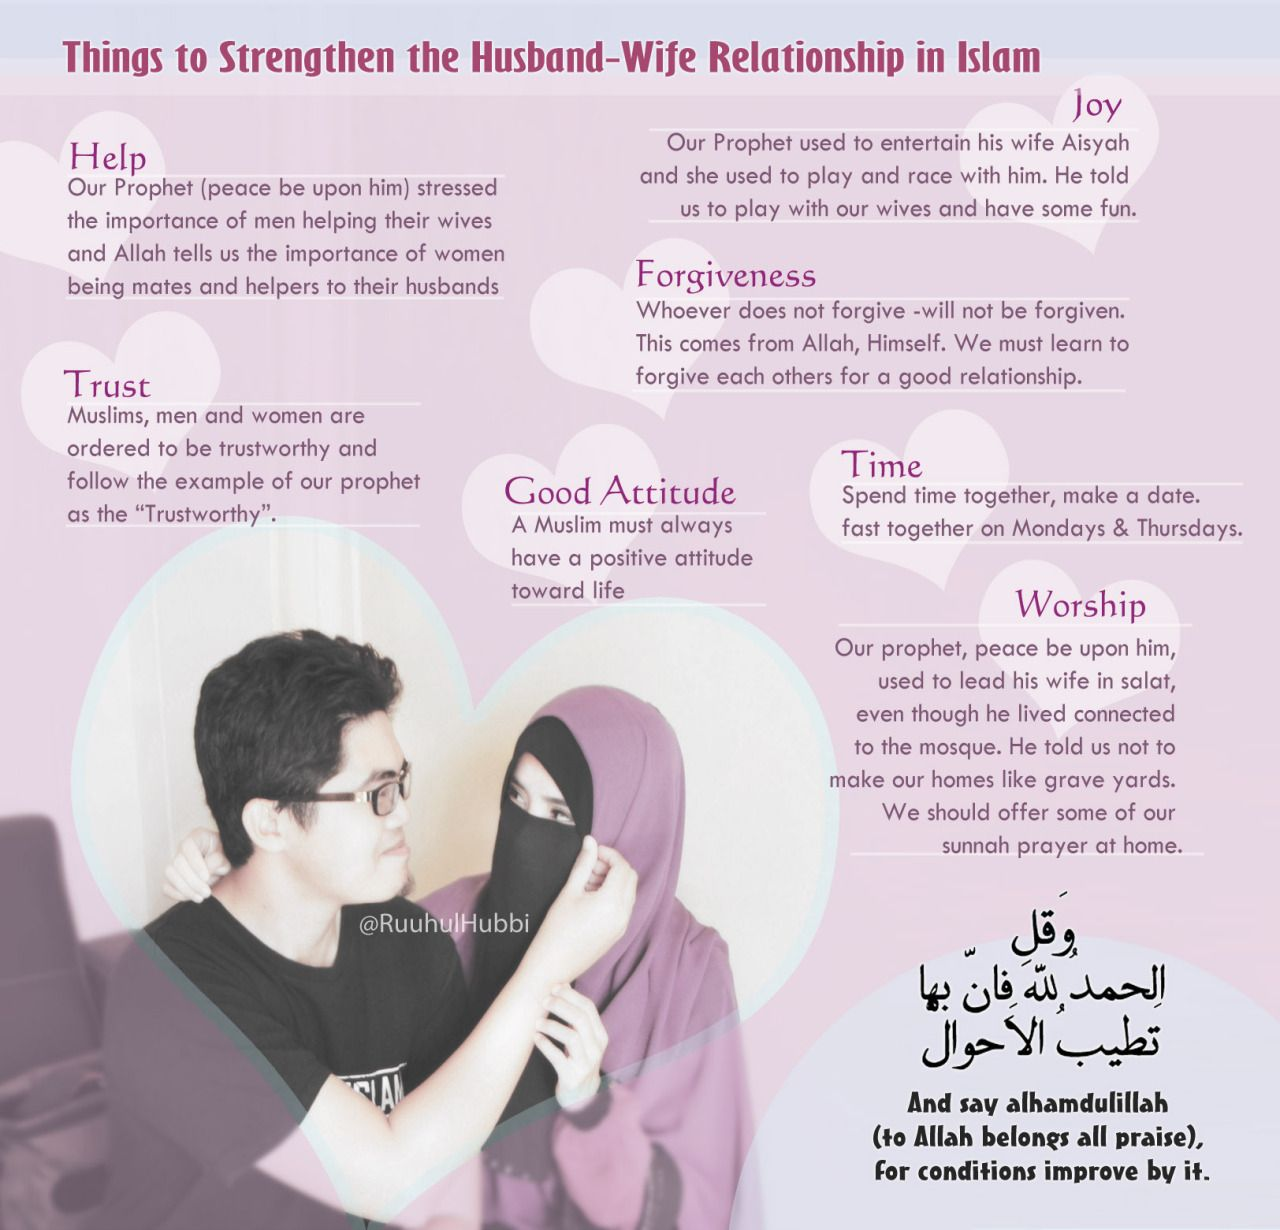 Things To Strengthen The Husband-wife Relationship In